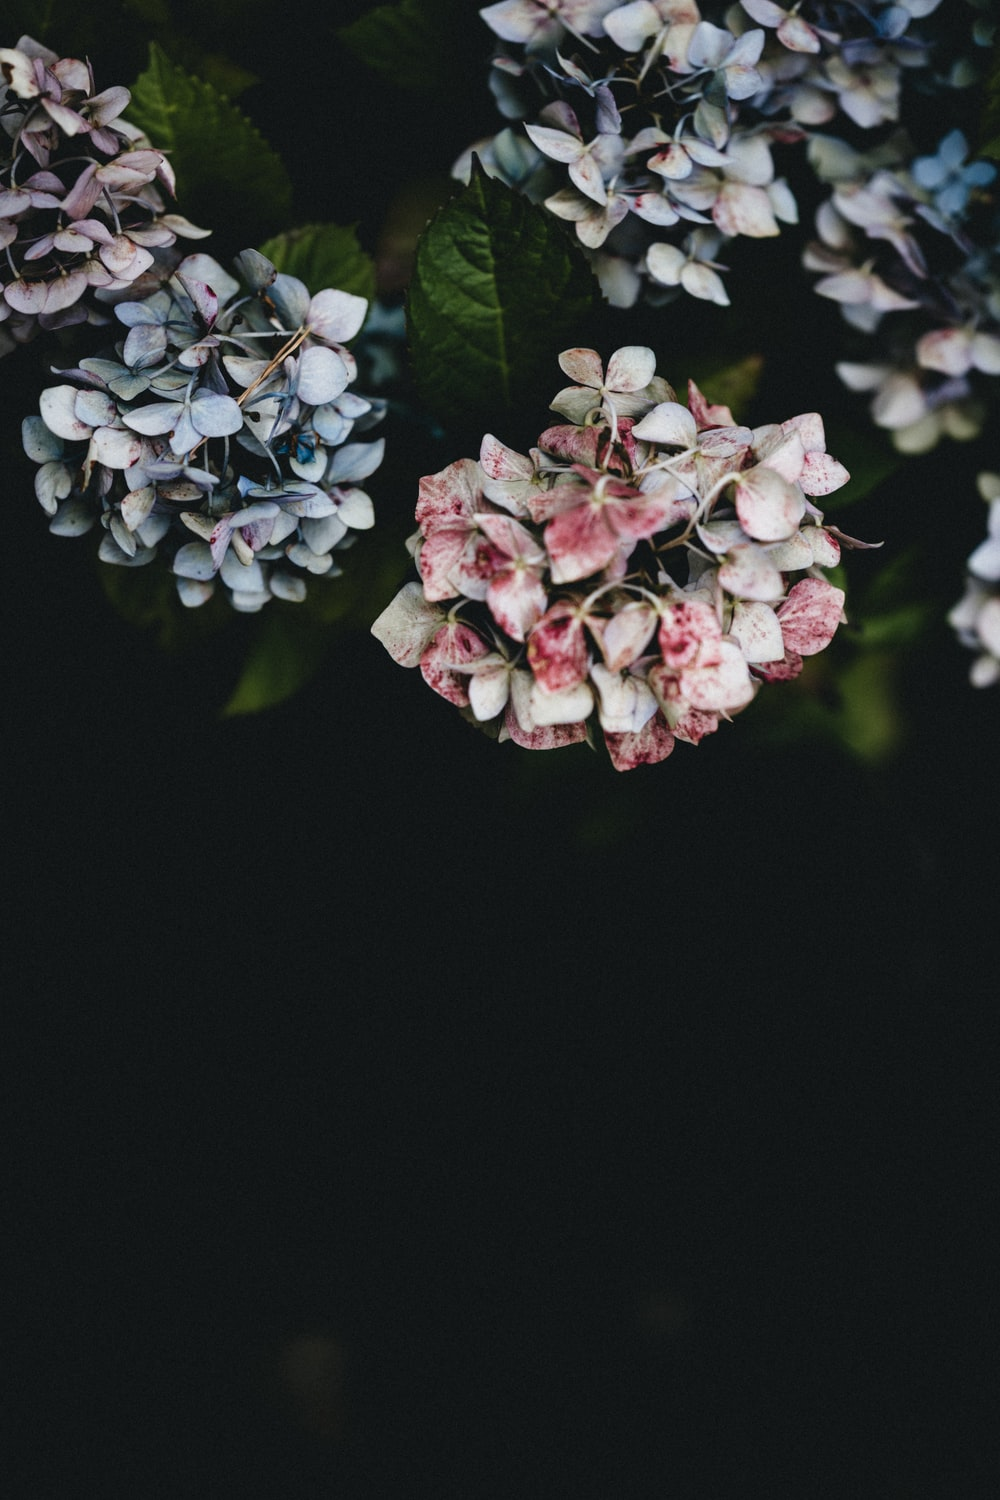 white and pink flowers in black background